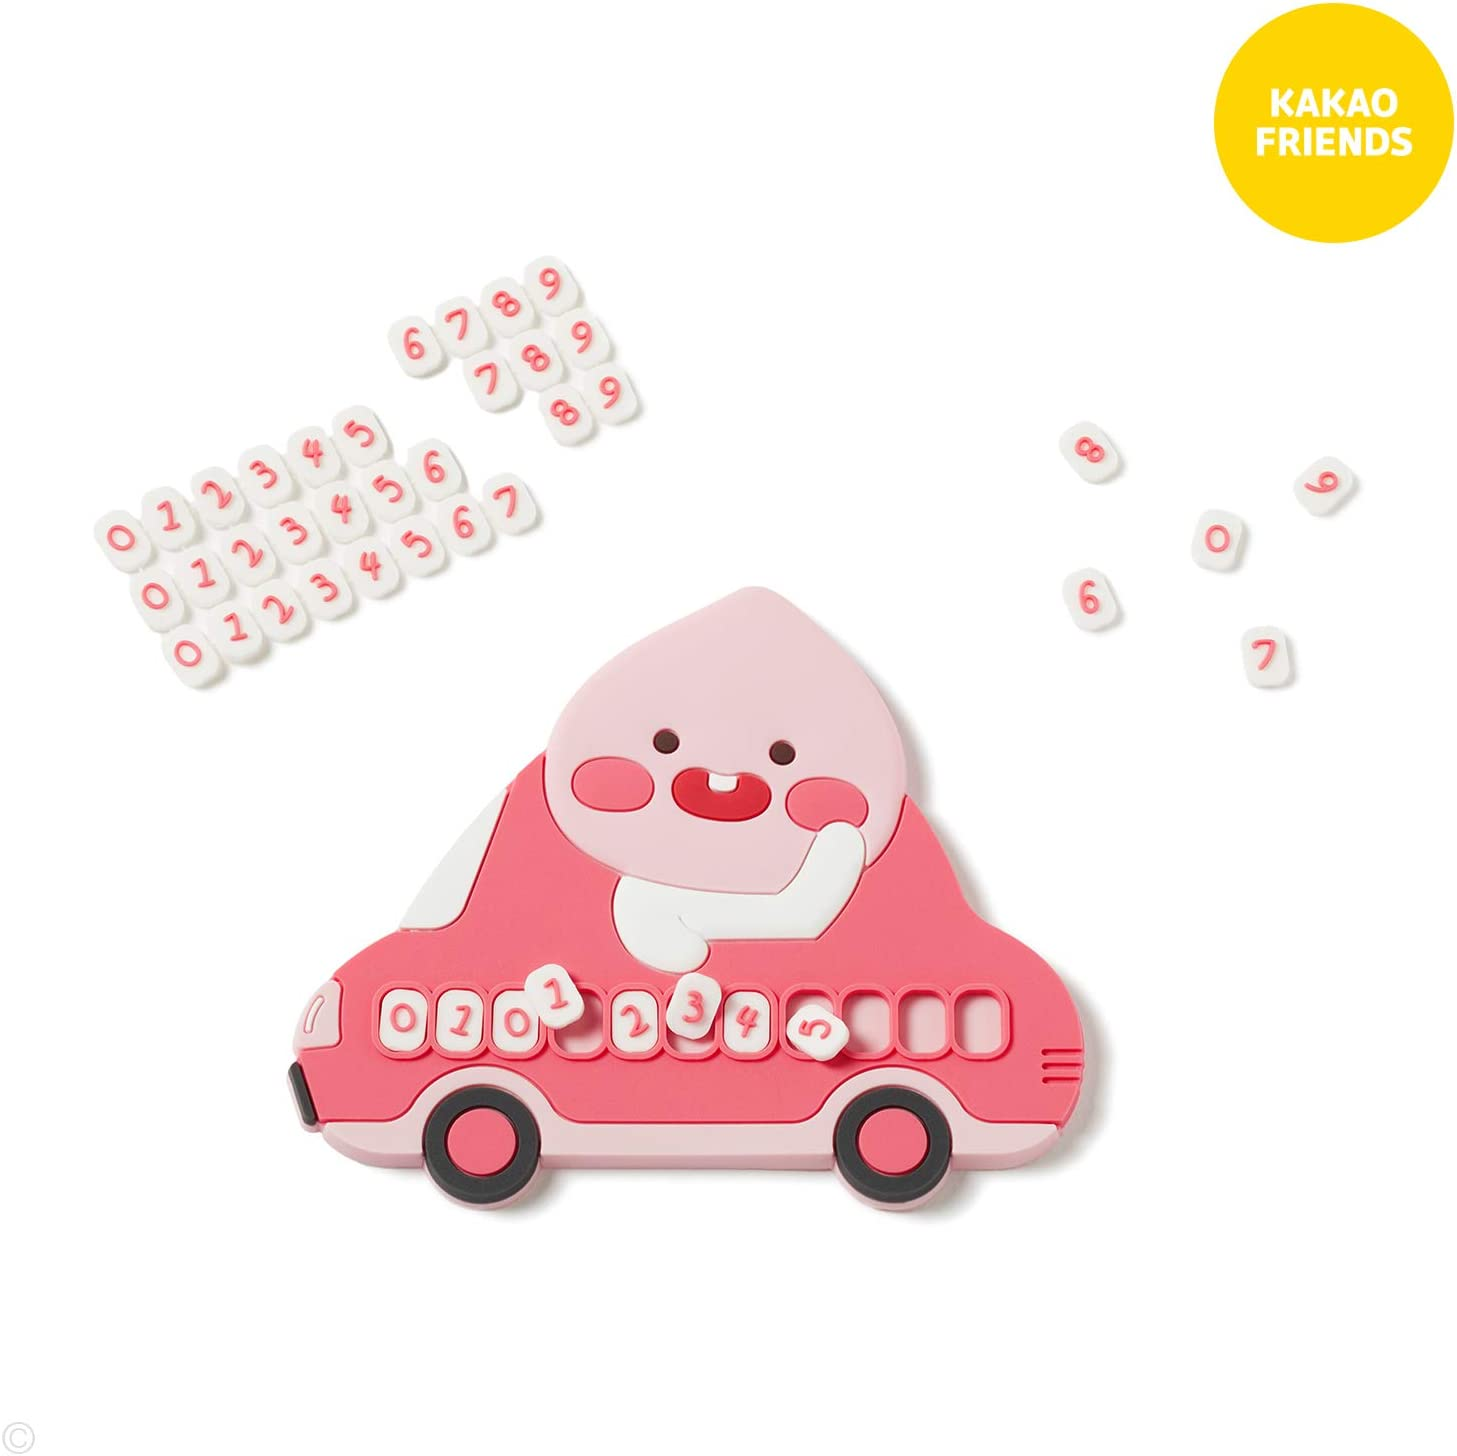 Little Friends Car Temporary Parking Phone Number Plate for Automotive KAKAO FRIENDS Official Little Apeach